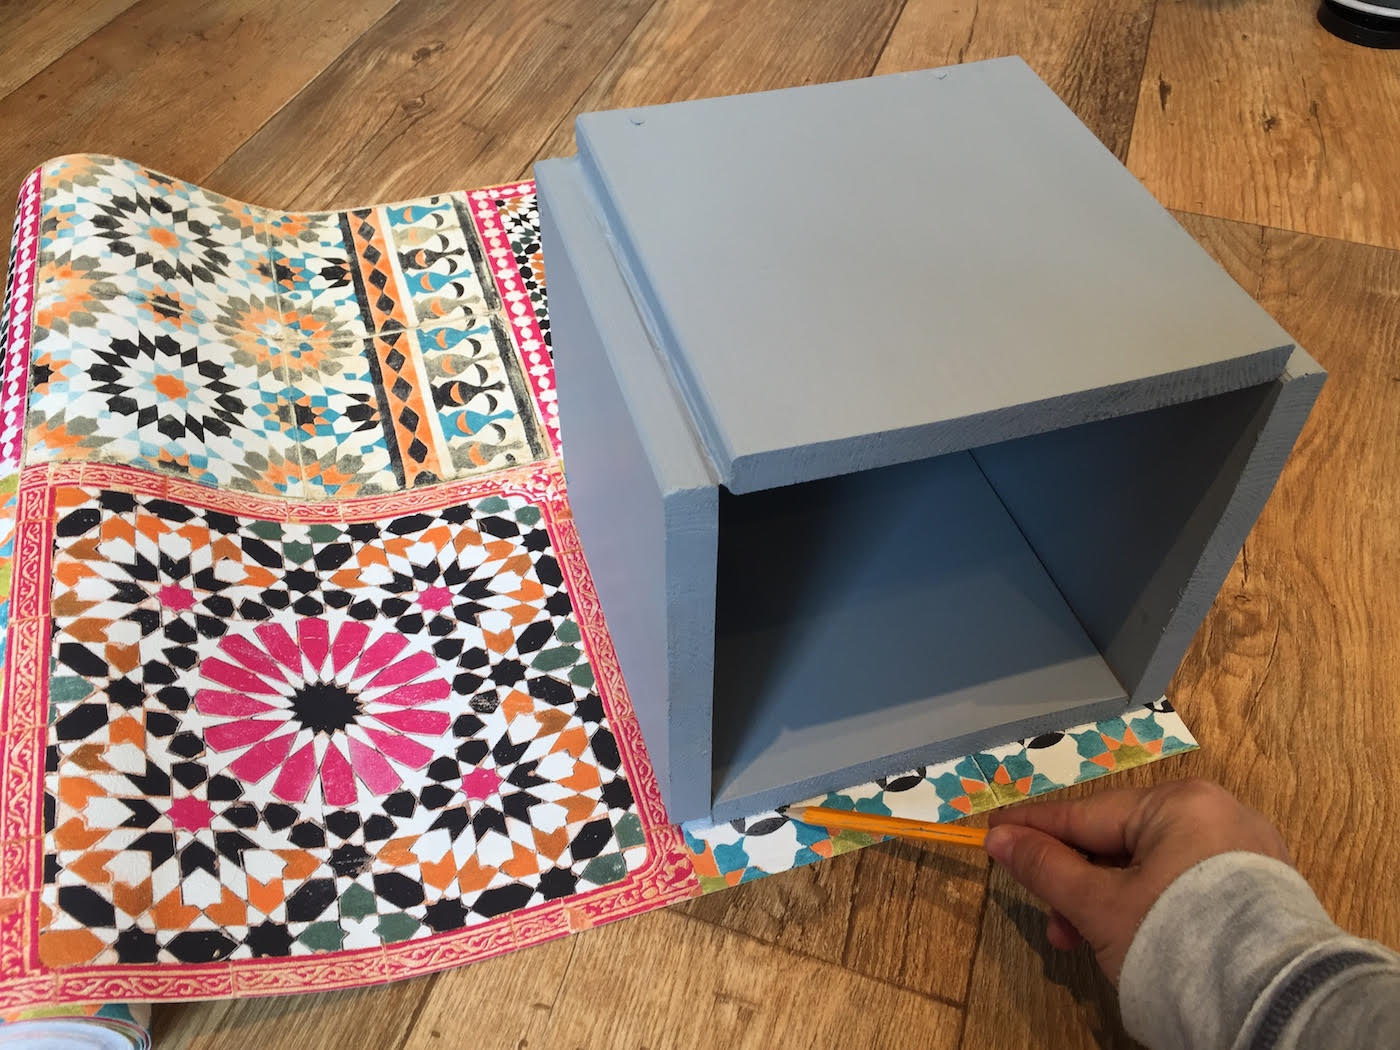 diy do it yourself the handy mano mano mano manomano moroccan style tile tiles cement concrete plant planter botanical mediterranean upcycle budget look for less cube on wallpaper